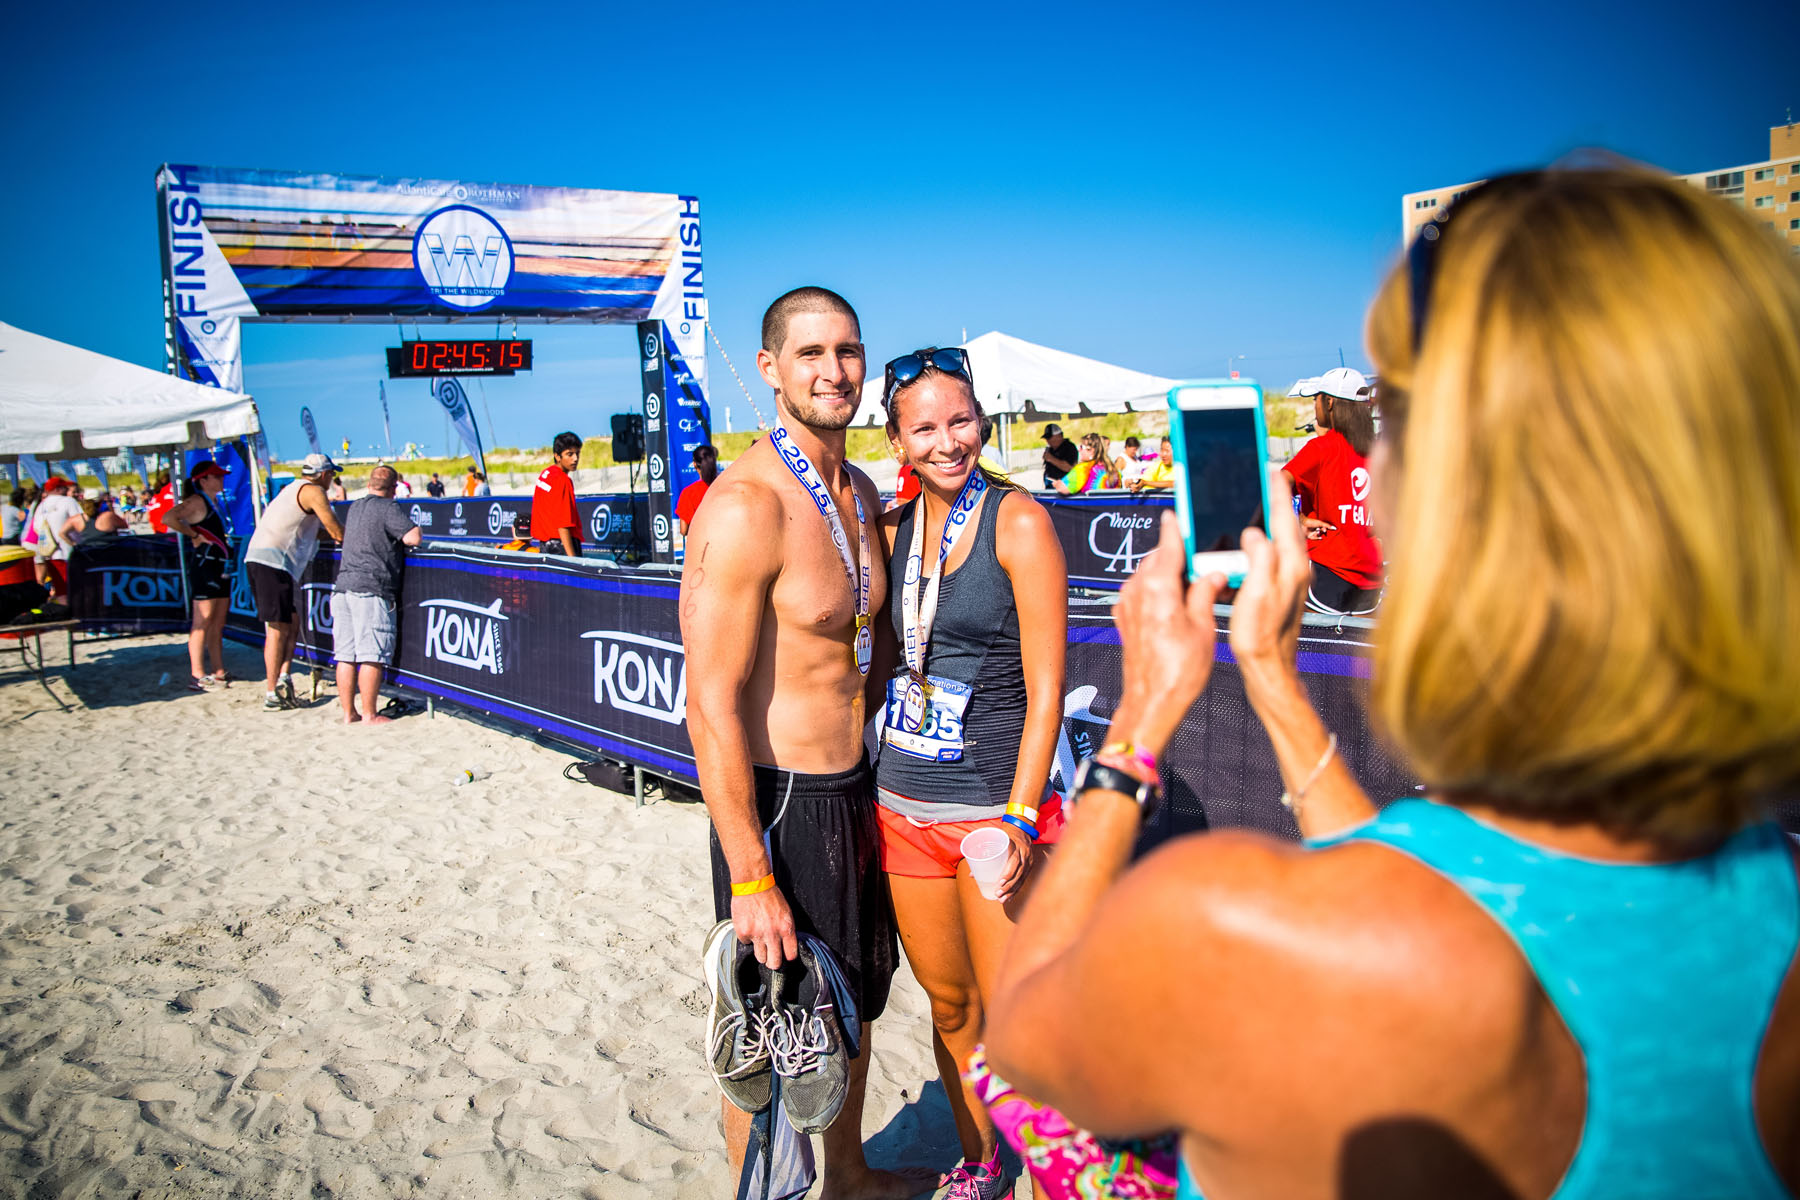 Tri The Wildwoods New Jersey Triathlon - Young triathlete finishers